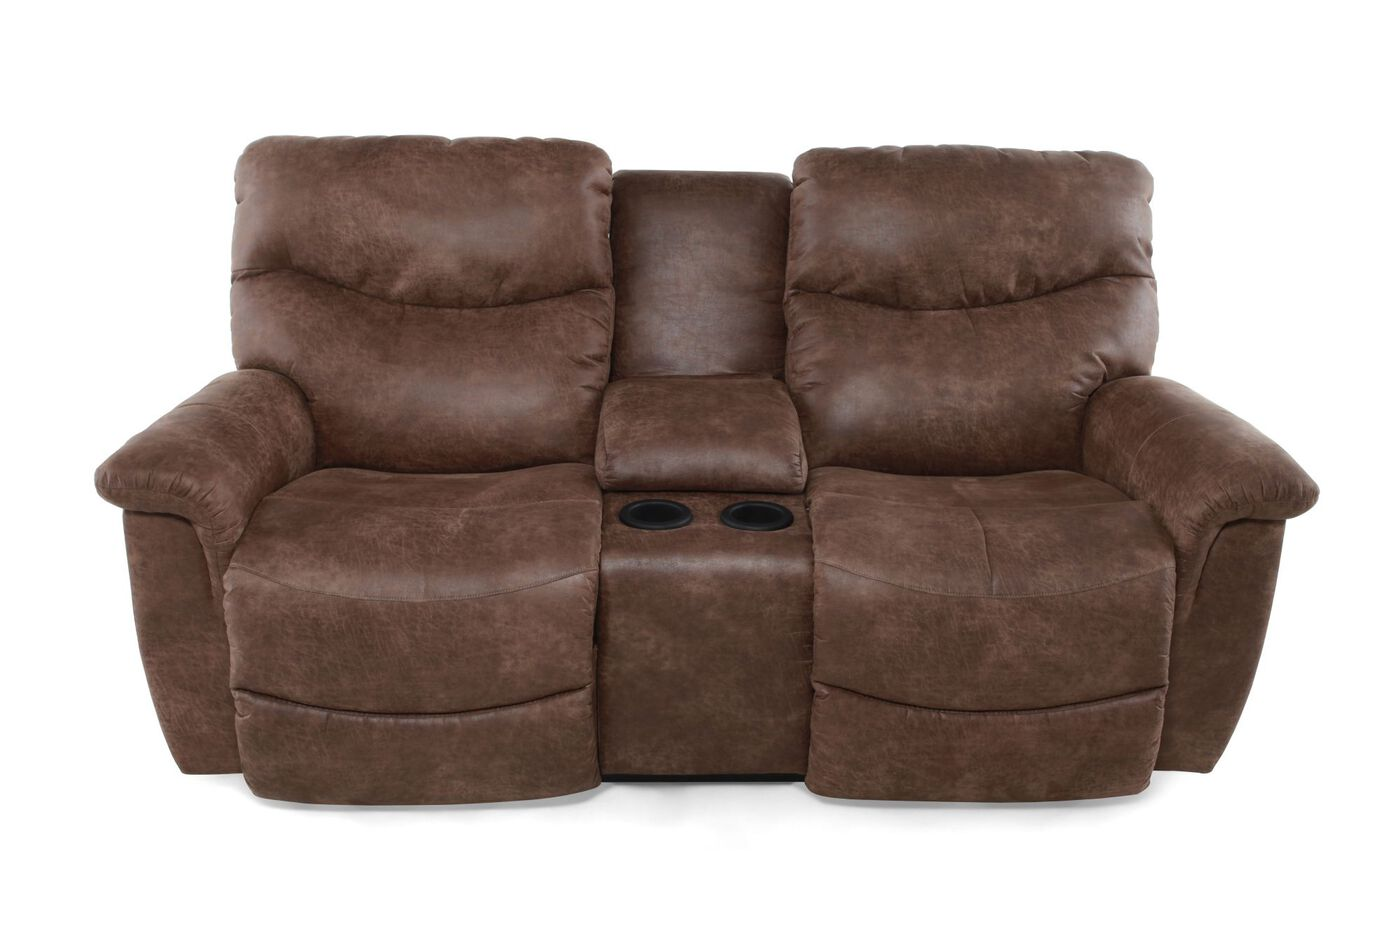 Power Reclining Leather Loveseat La Z Boy Mathis Brothers